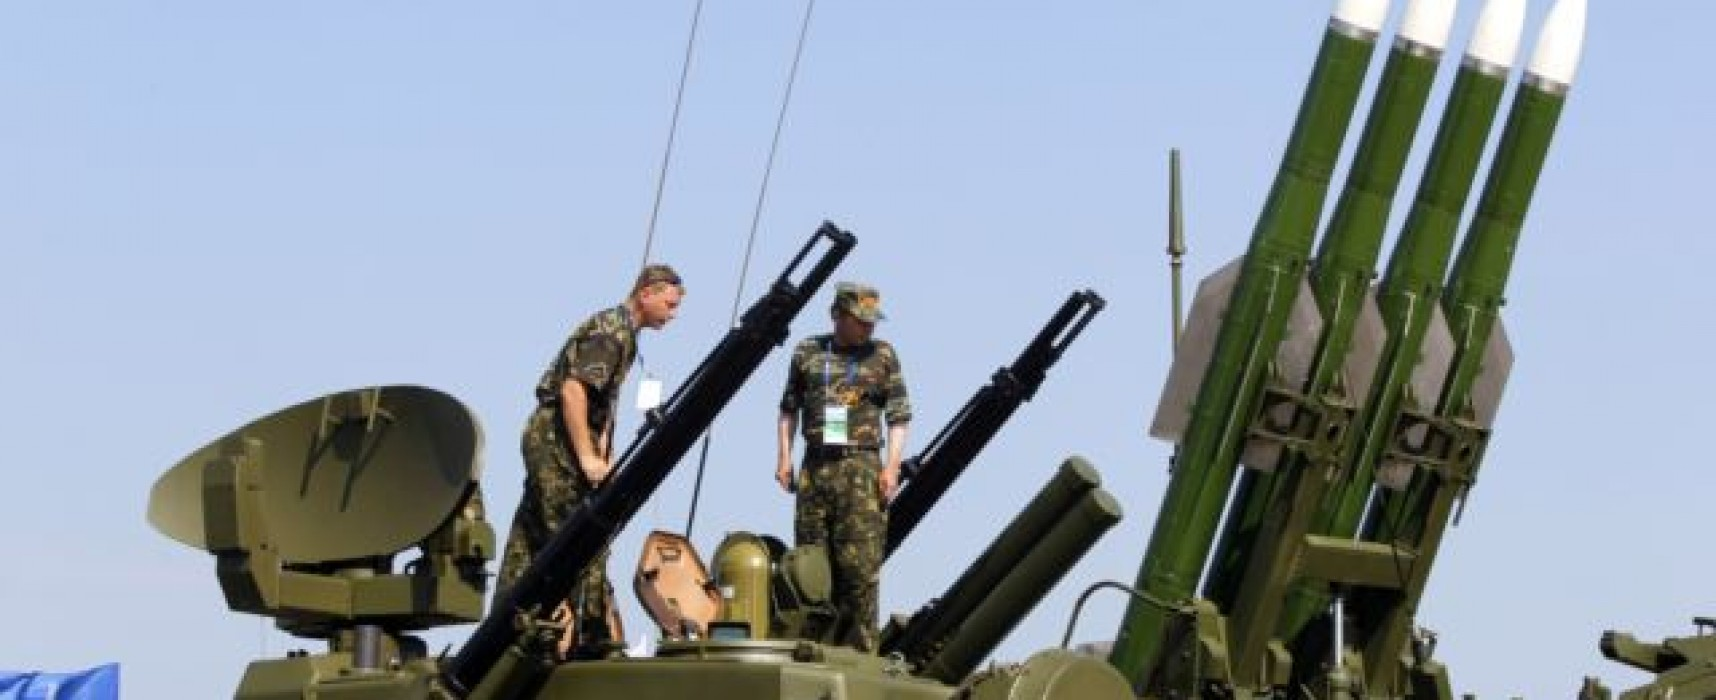 Evidence Mounts That Russia Supplied Buk Missiles To Ukraine Separatists